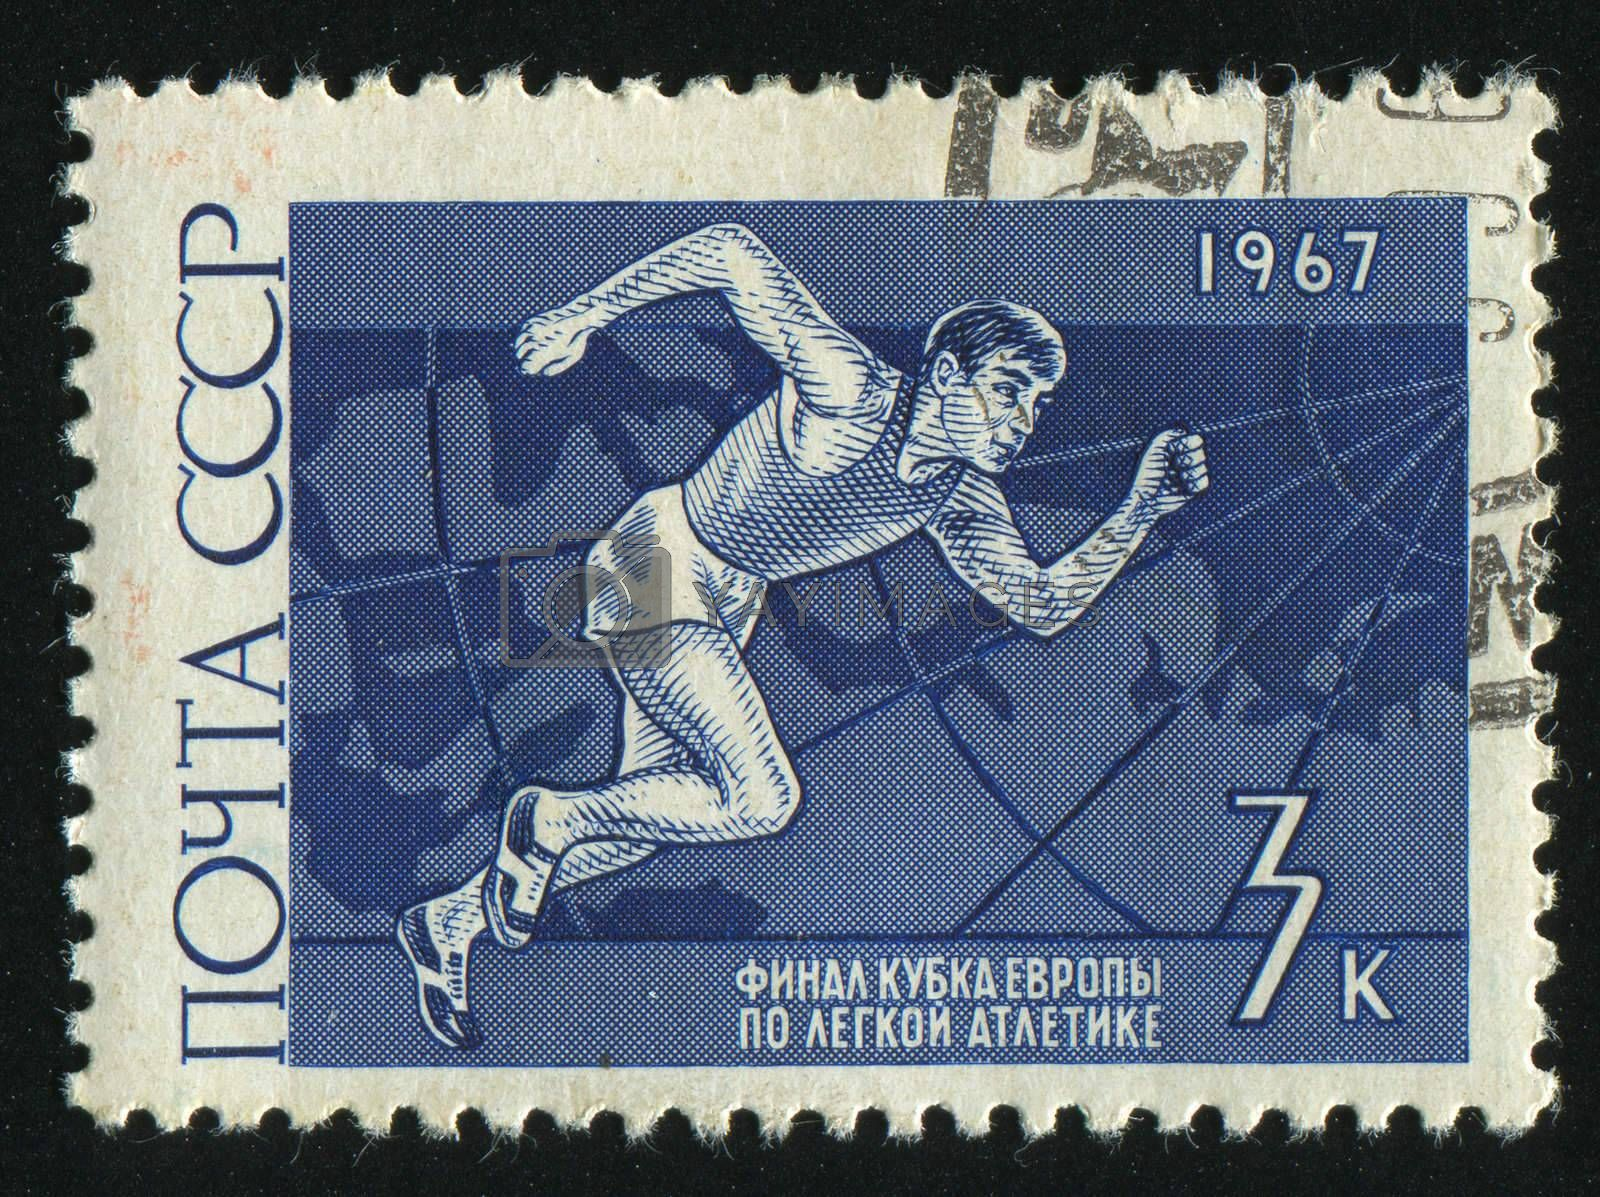 RUSSIA - CIRCA 1967: stamp printed by Russia, shows running athlete, circa 1967.